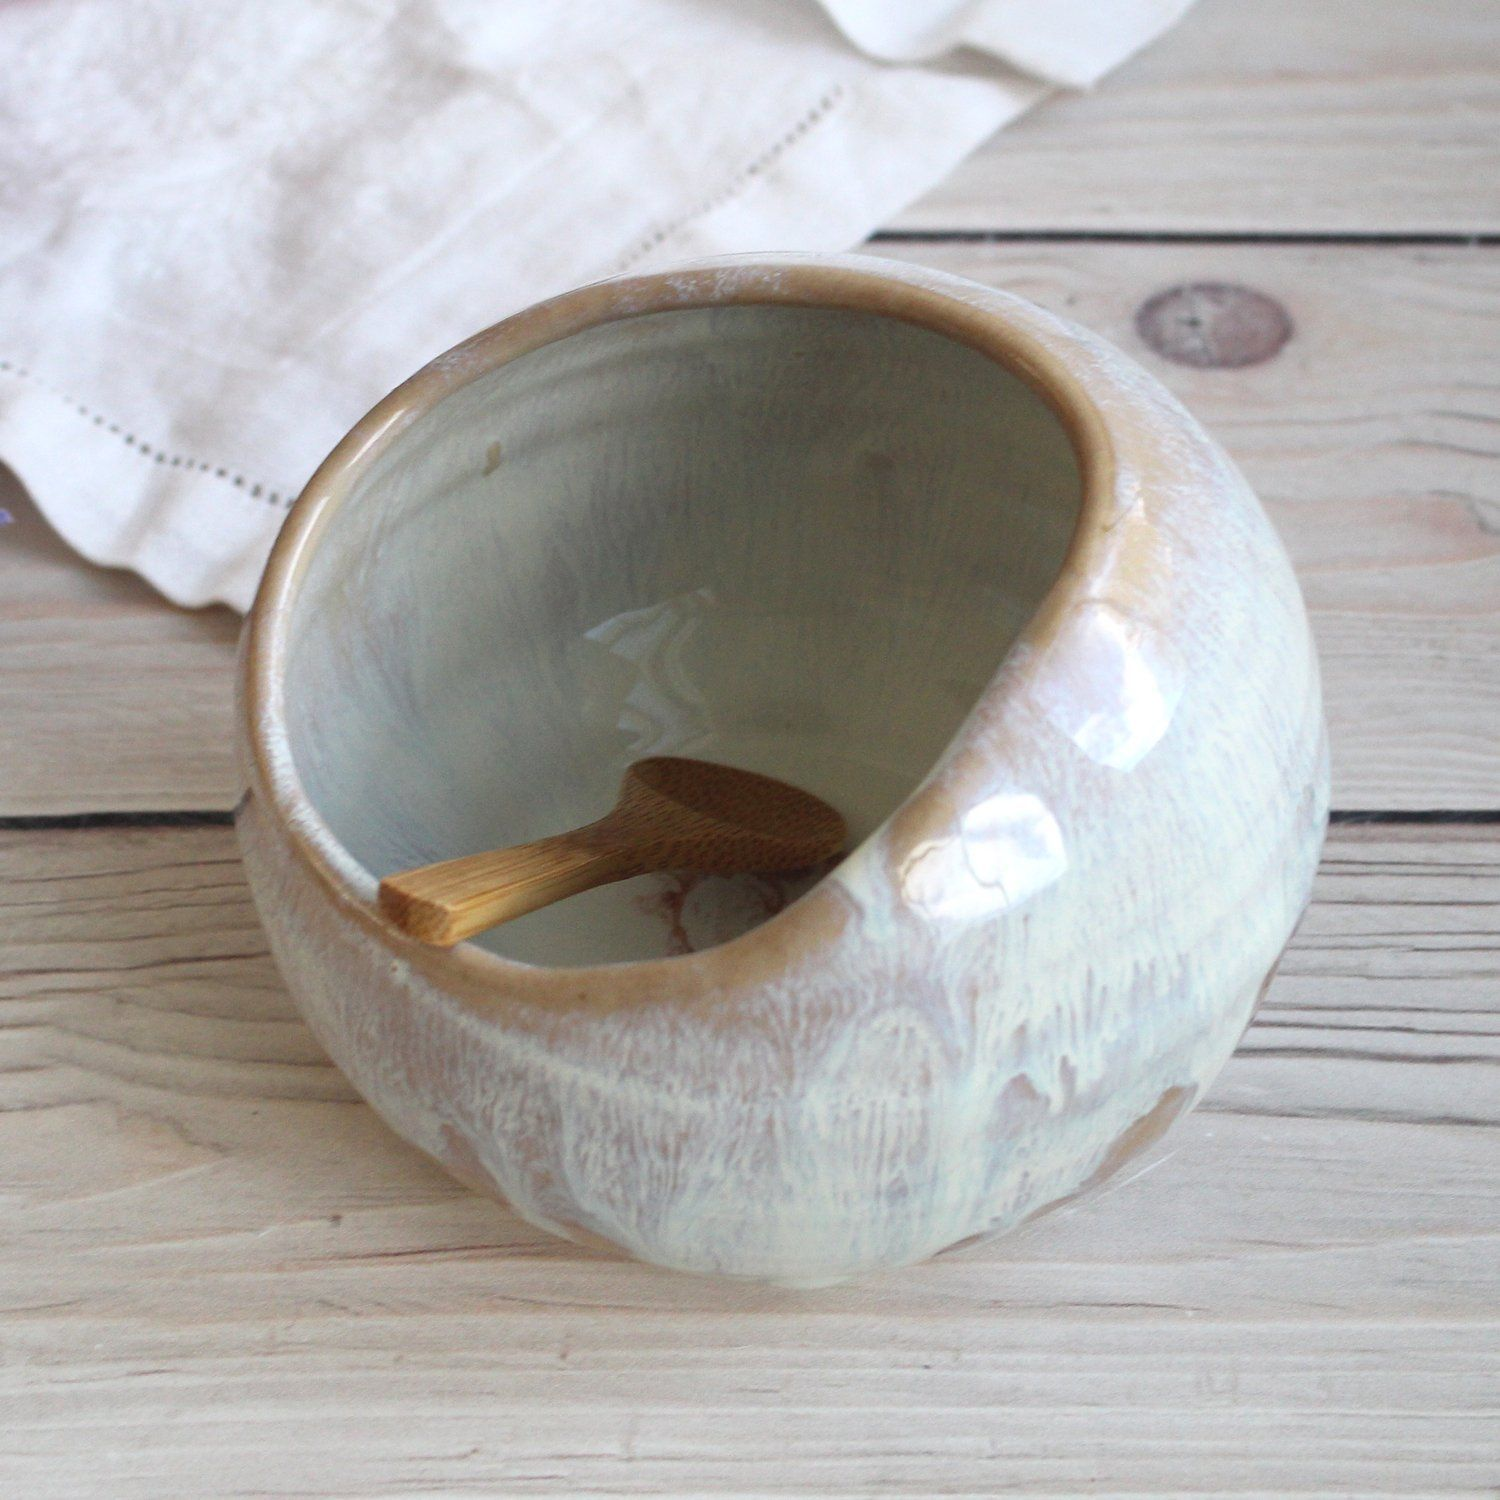 Ceramic Salt Cellar in Rustic White and Ocher Dripping Glaze, Handcrafted Made in USA